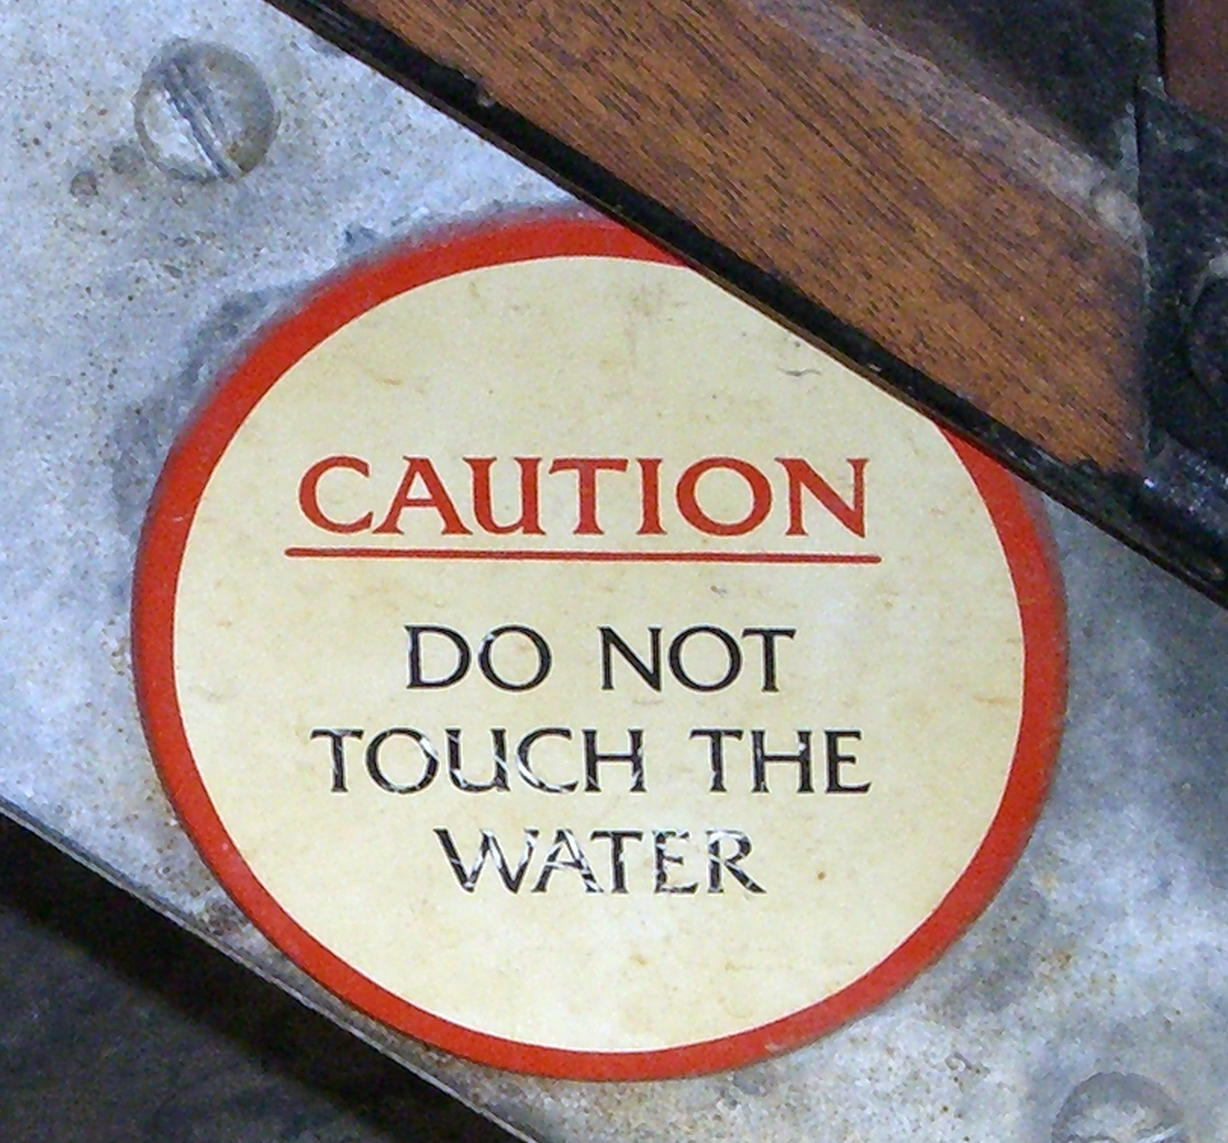 Do not touch the water